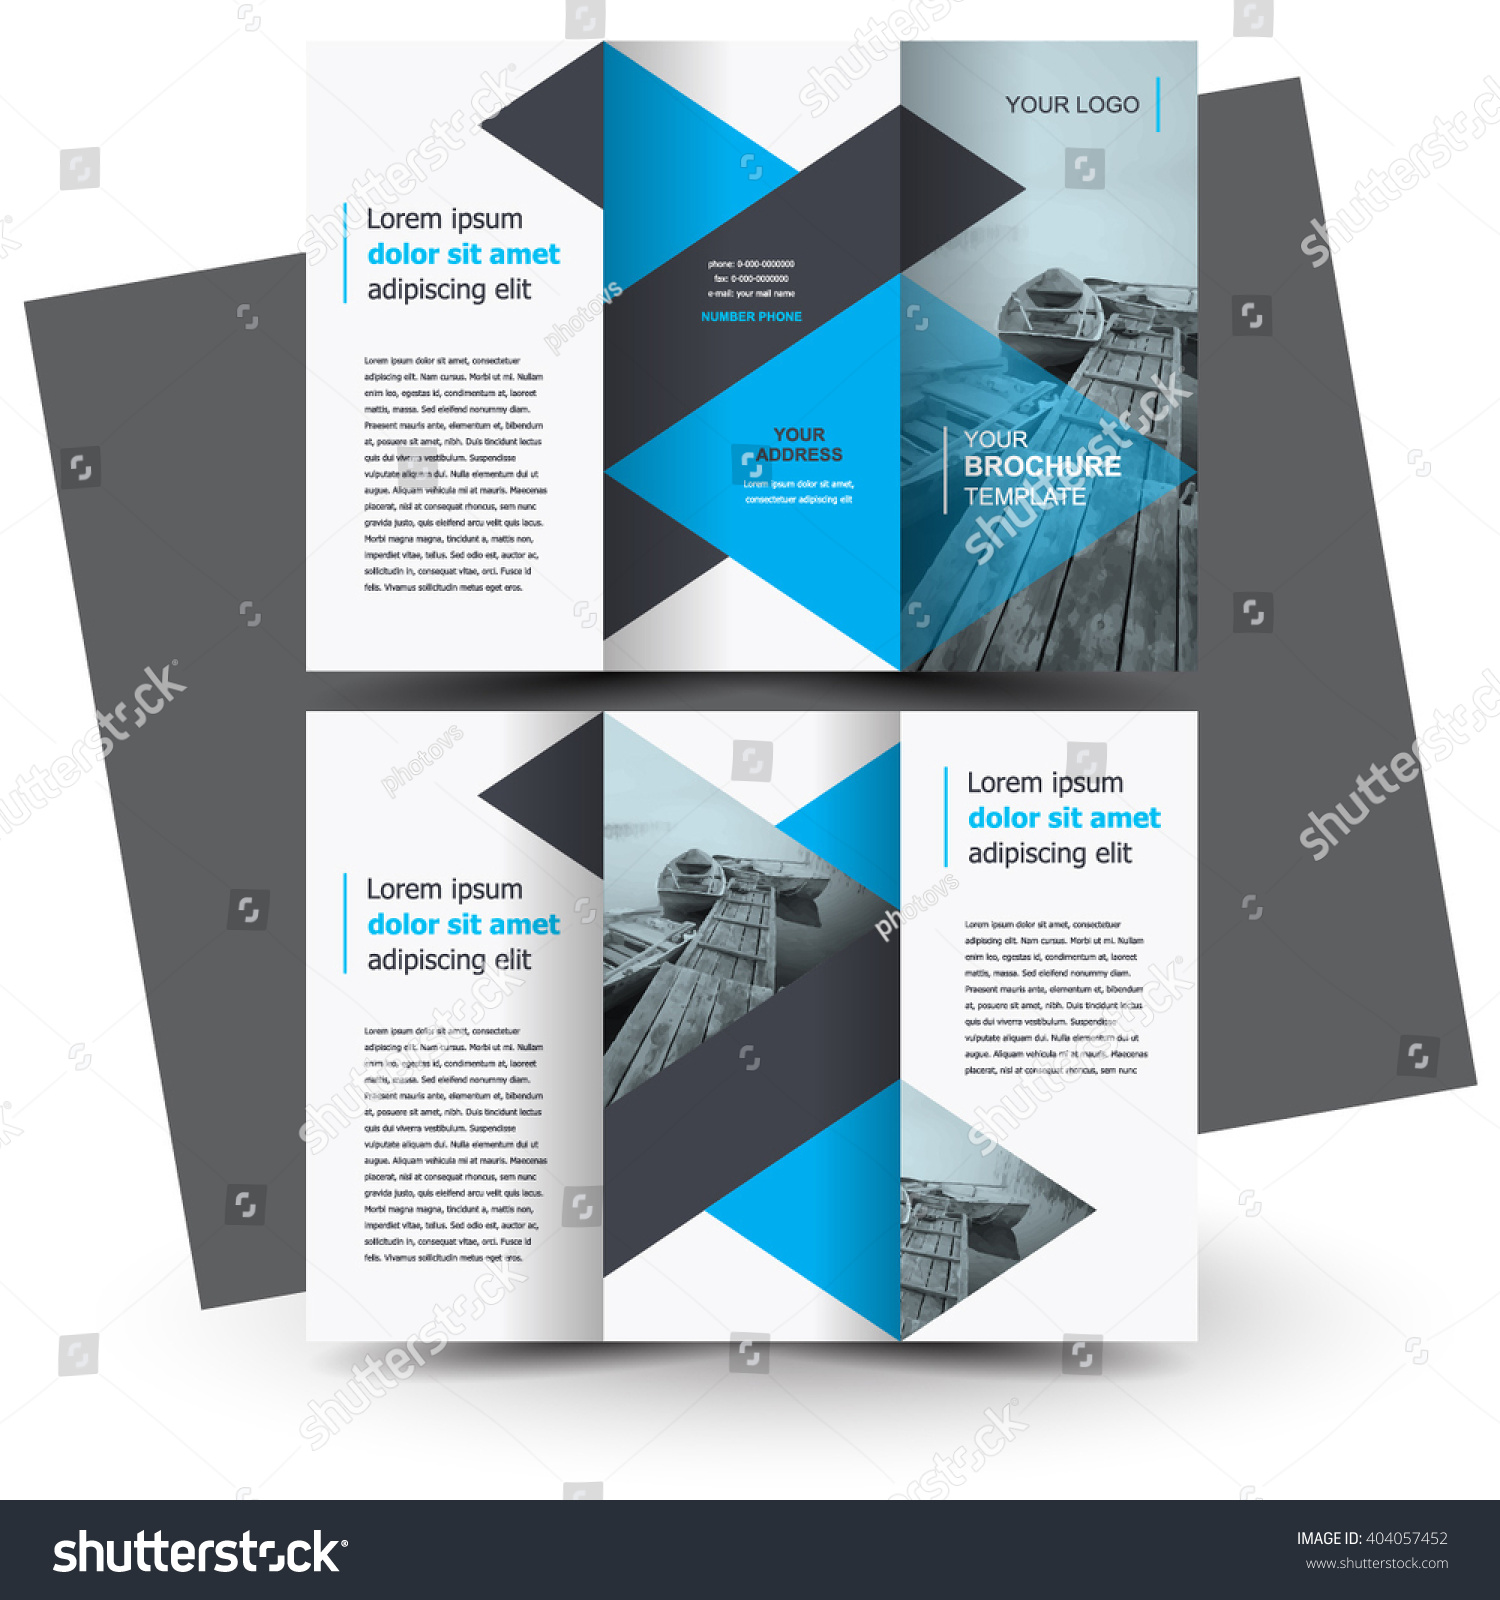 Brochure design brochure template creative trifold stock for Tri fold brochure design templates